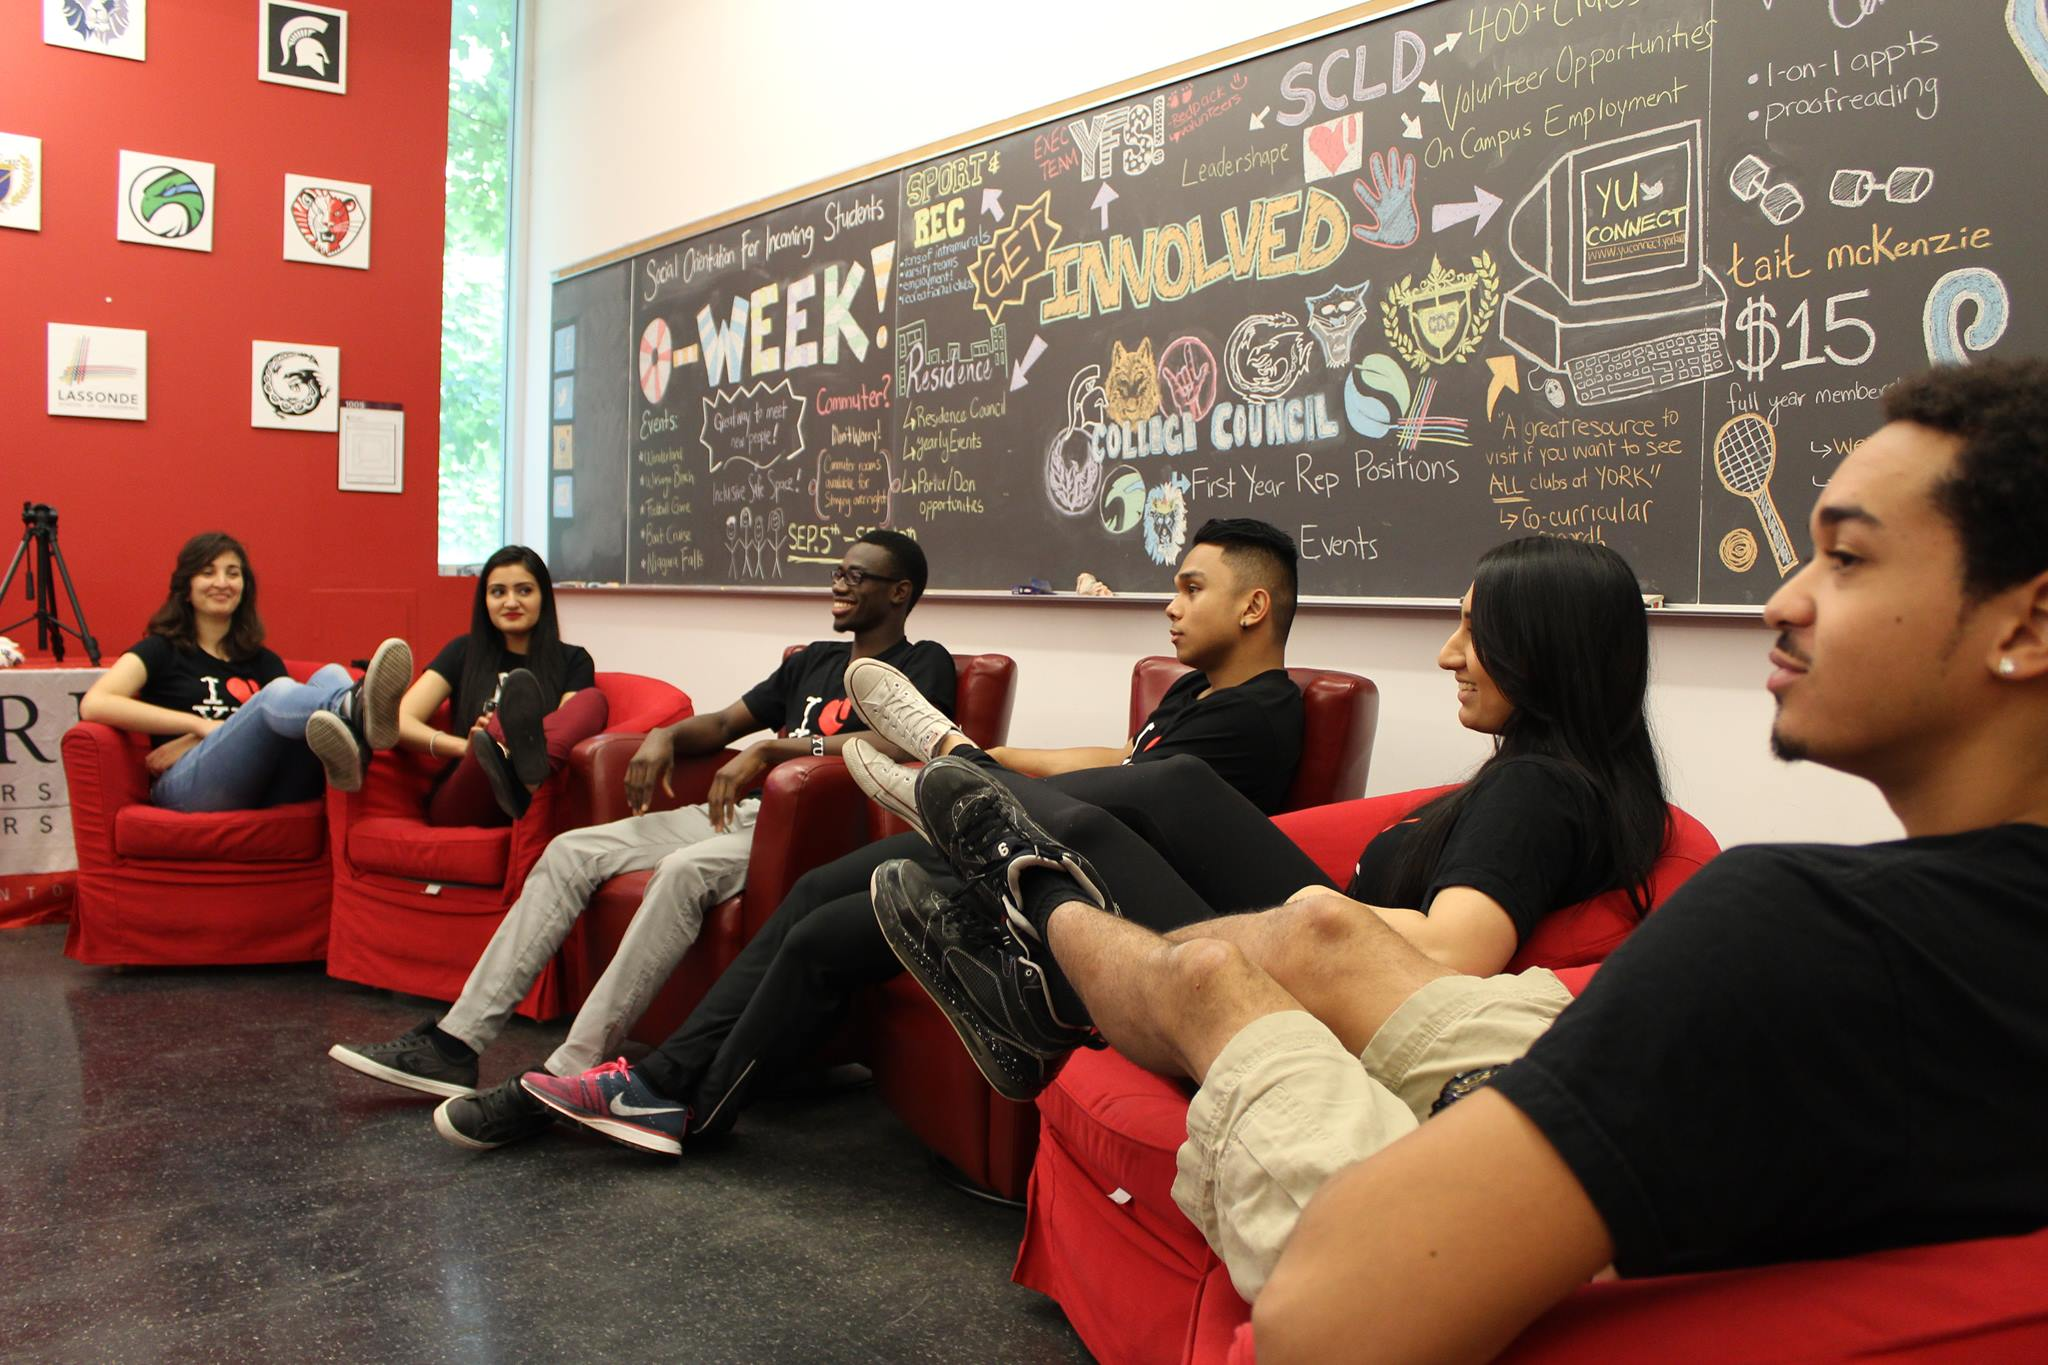 Members of the RED Zone hold a team meeting in a classroom at York University.